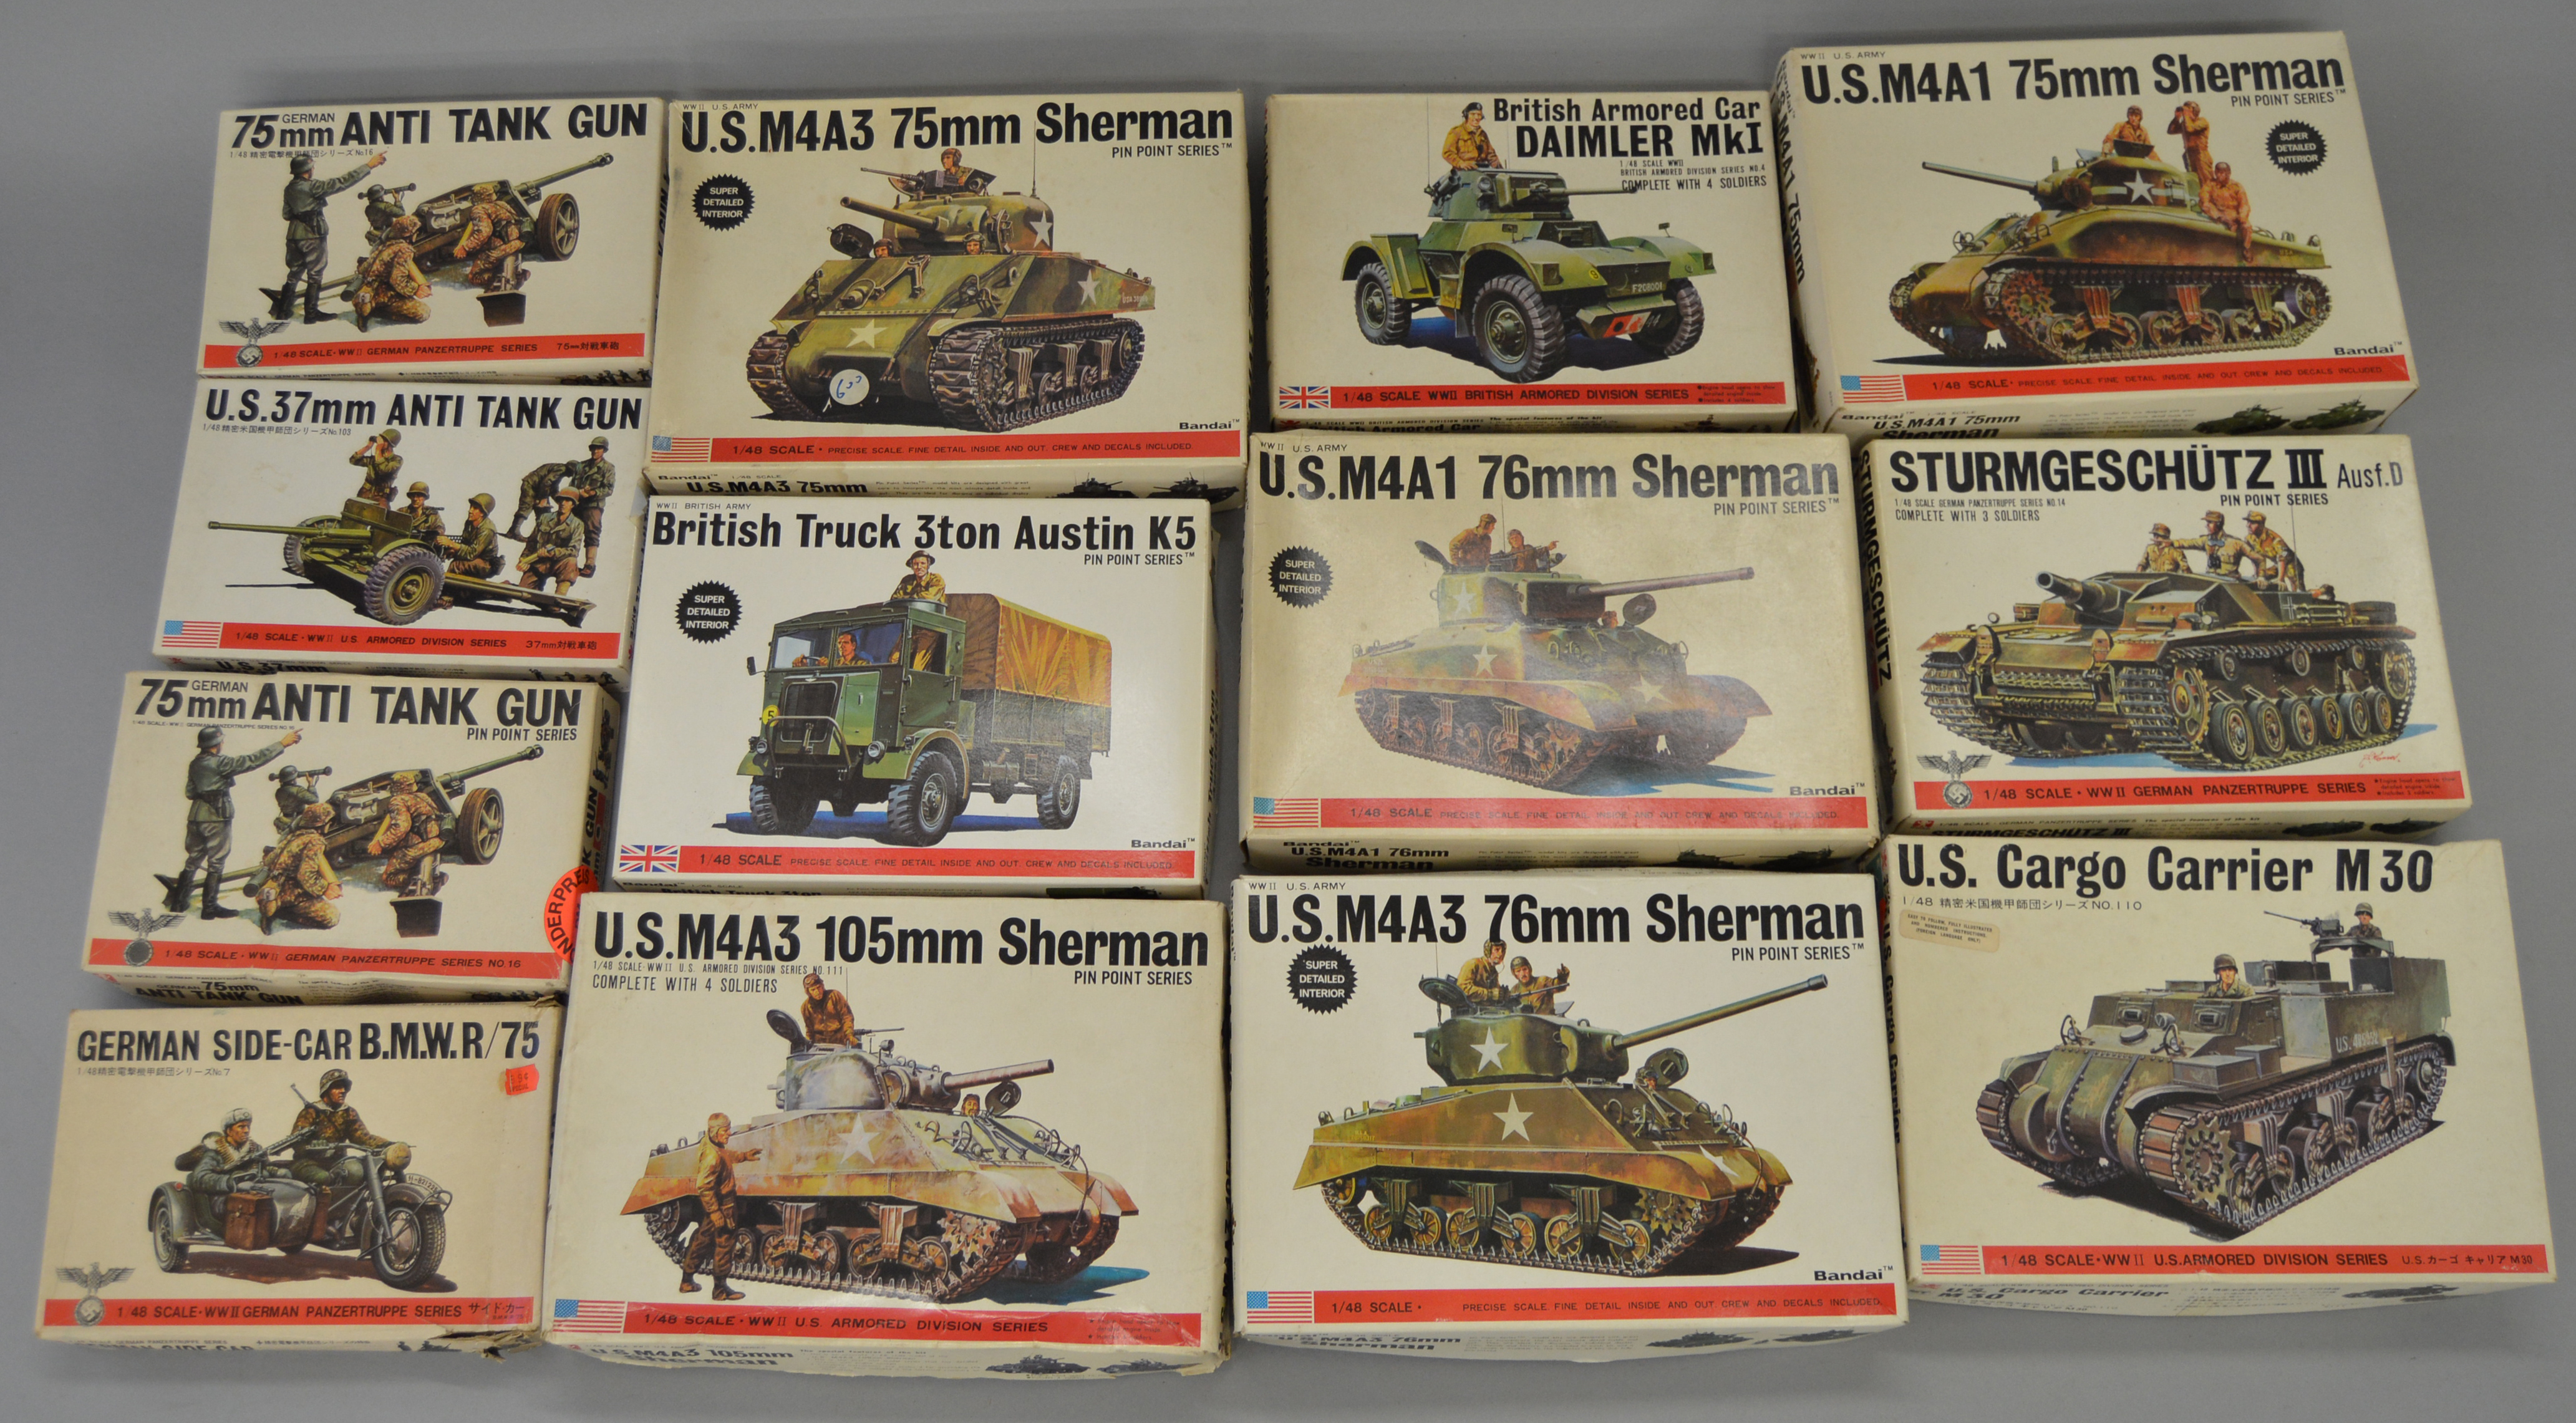 13 x Bandai 1:48 scale military model kits  Viewing recommended